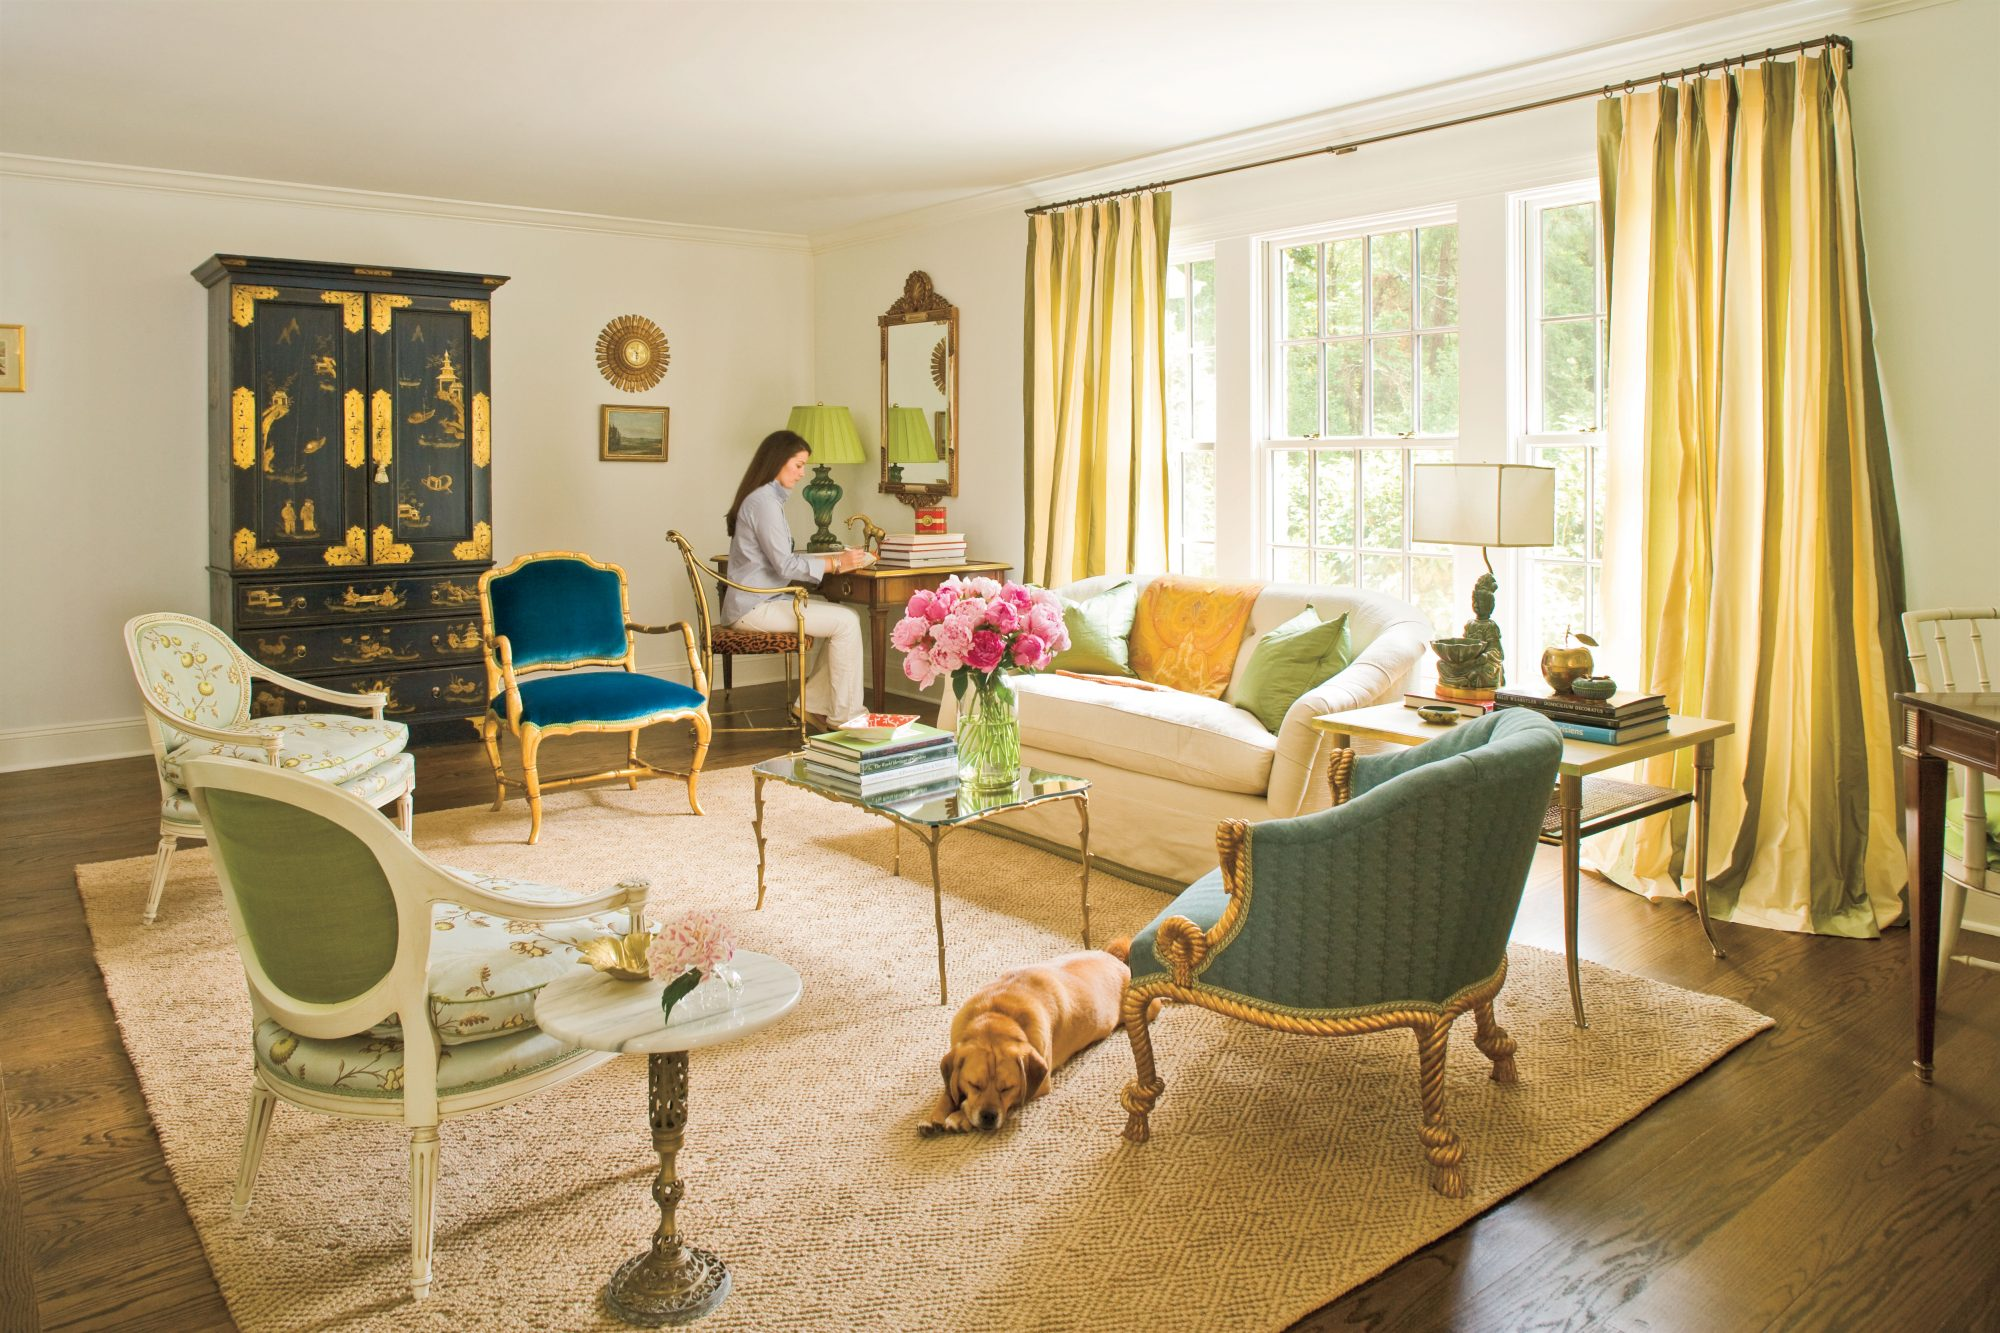 Interior Decorating Ideas Tradition With A Colorful Twist Southern